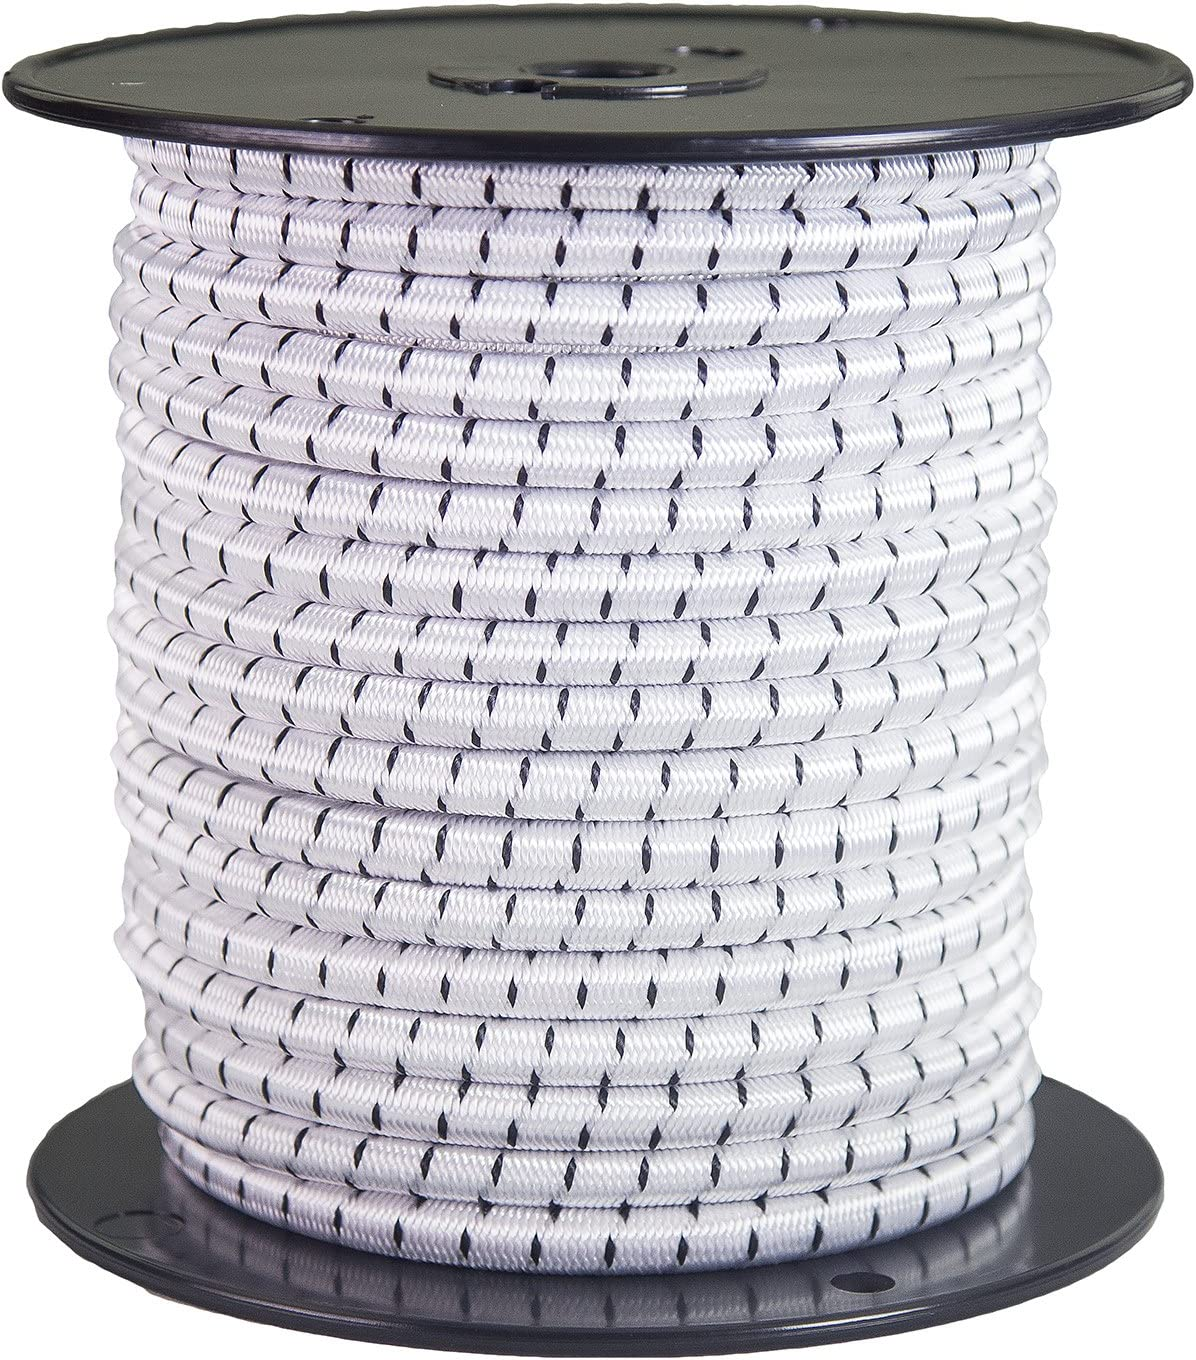 Customize with FMS Shock Cord Hooks and More Tie Downs Heavy Duty Bungy Cordage in Multiple Diameters and Lengths for DIY Projects Ravenox Elastic Shock Bungee Cord   5//16-in x 500 FT